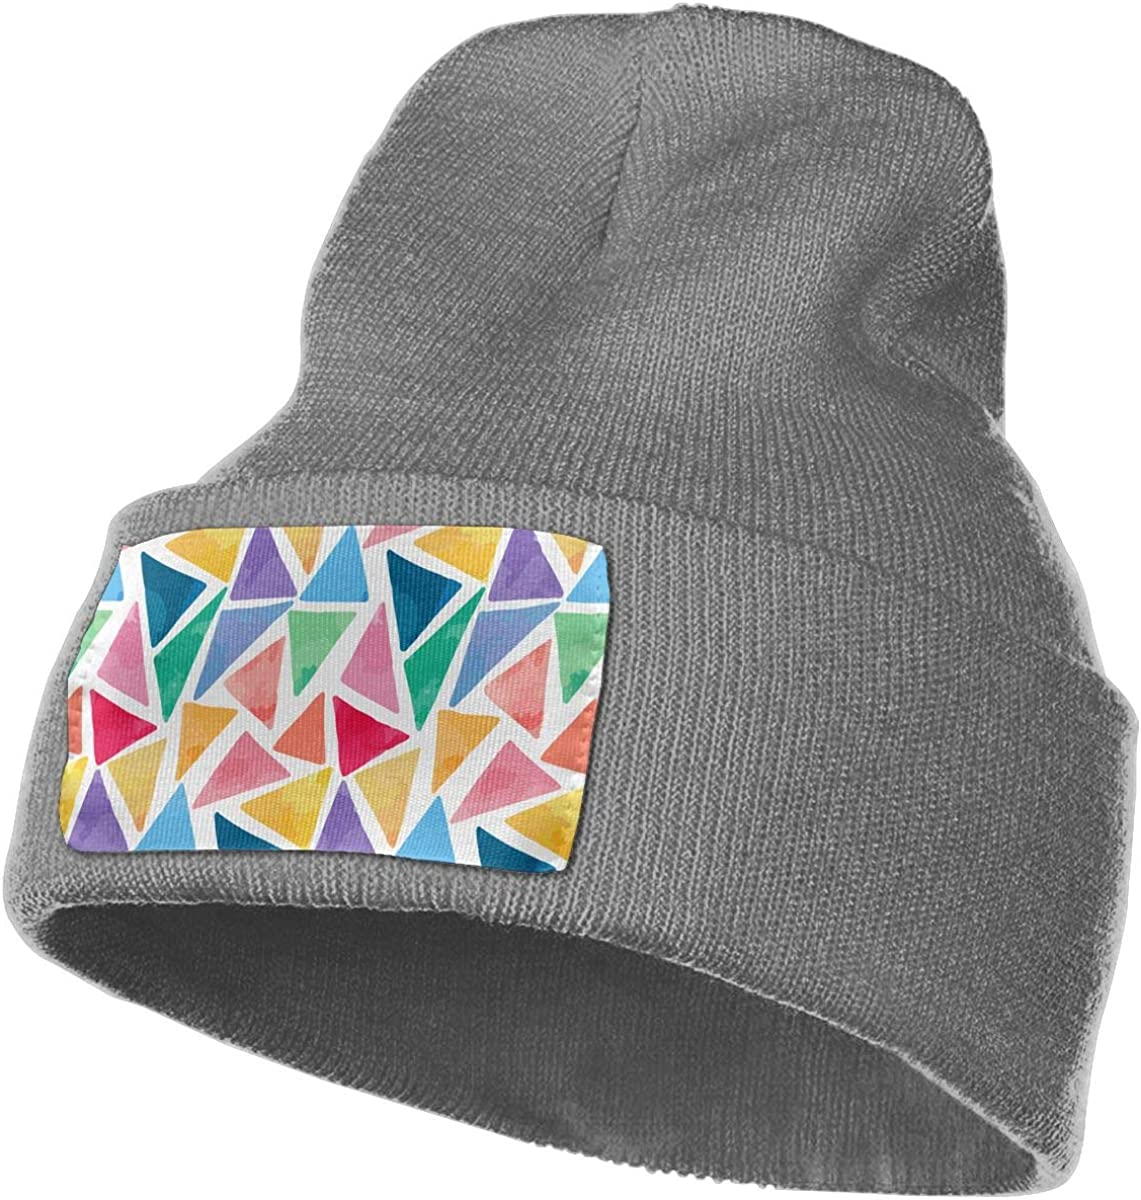 TAOMAP89 Watercolor Triangles Men /& Women Skull Caps Winter Warm Stretchy Knit Beanie Hats